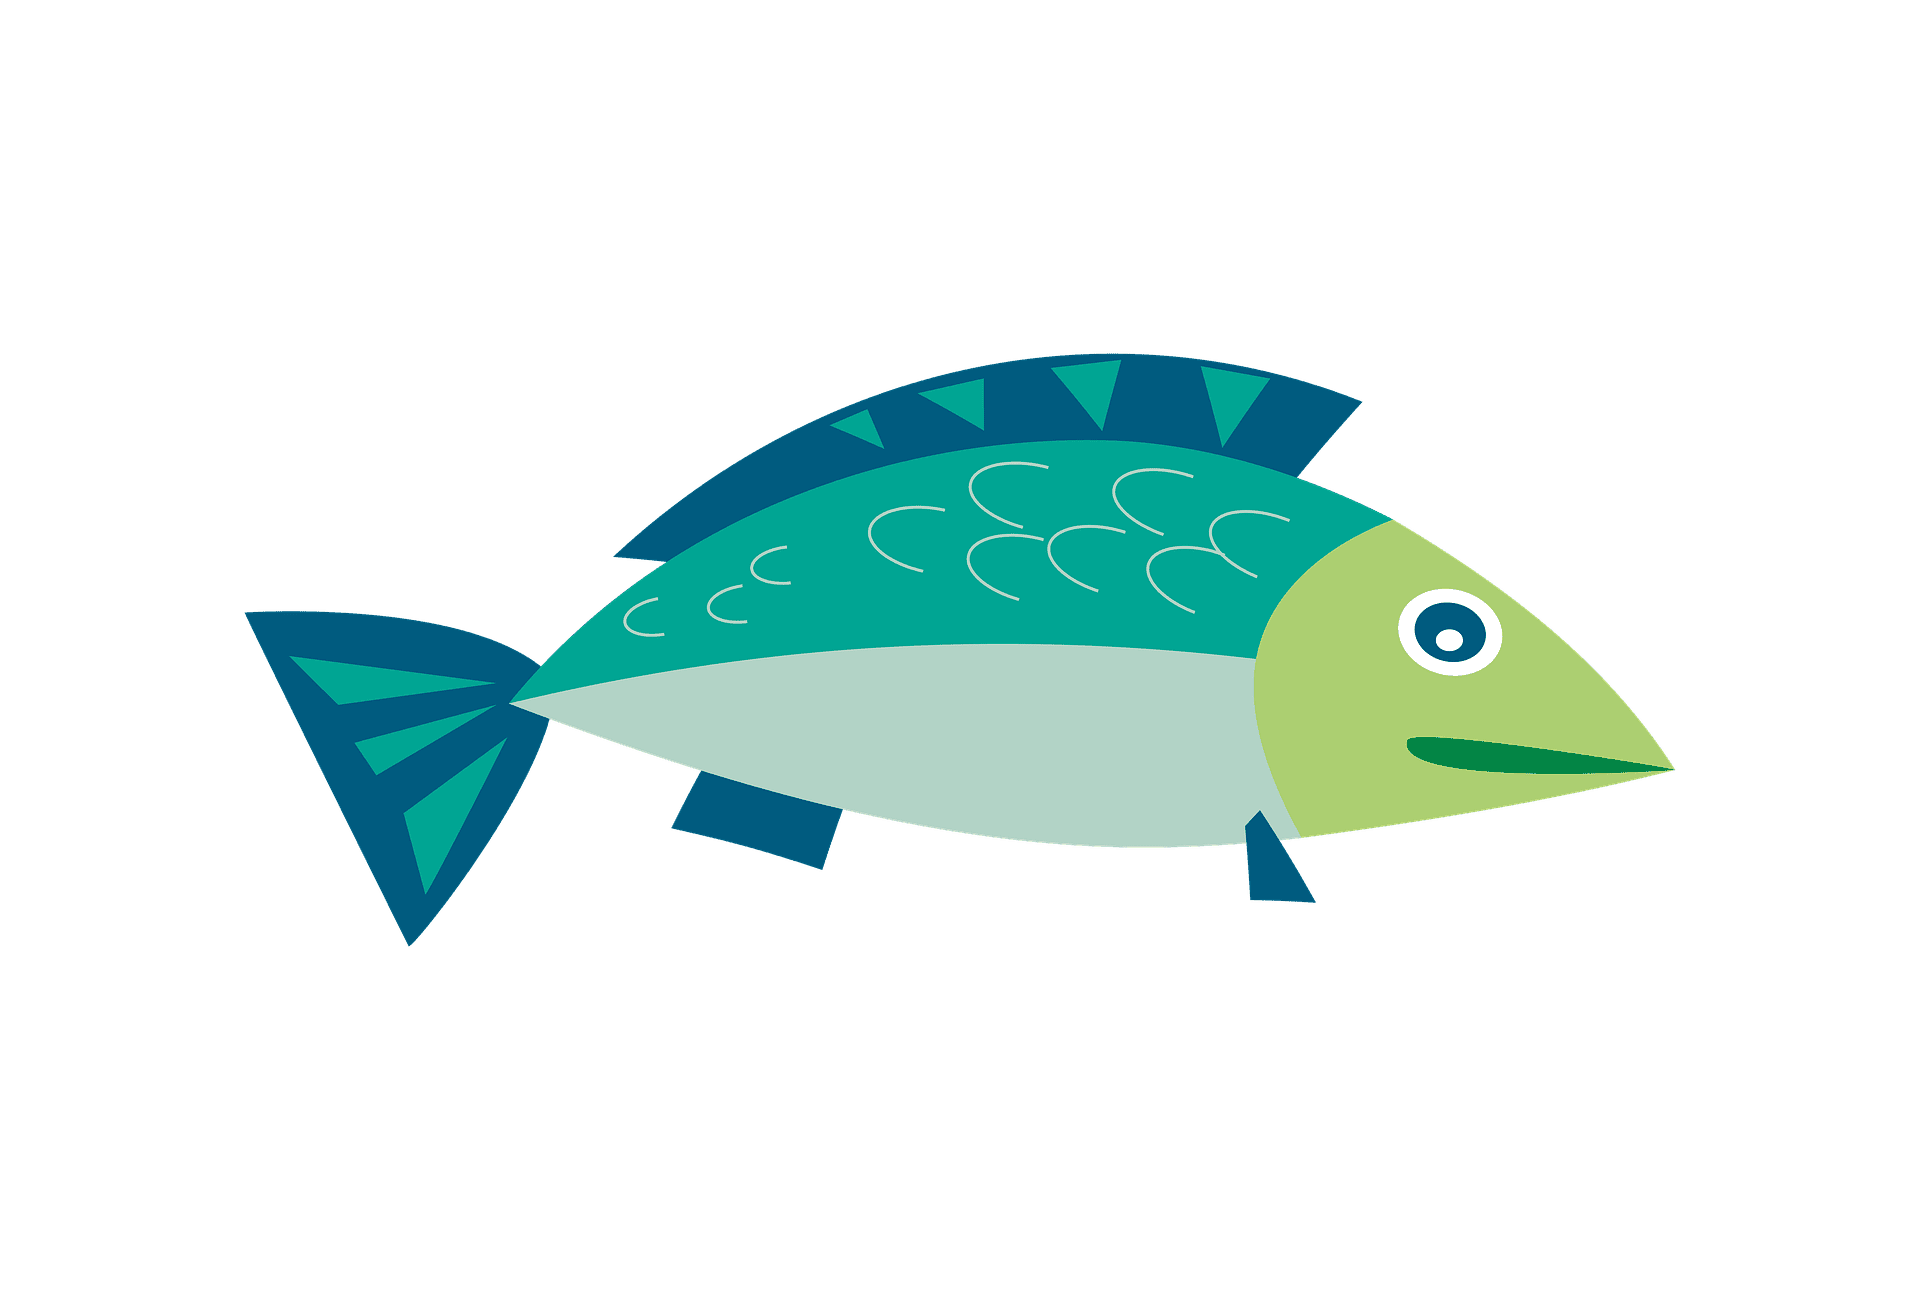 Fish clip art realistic. Free images and